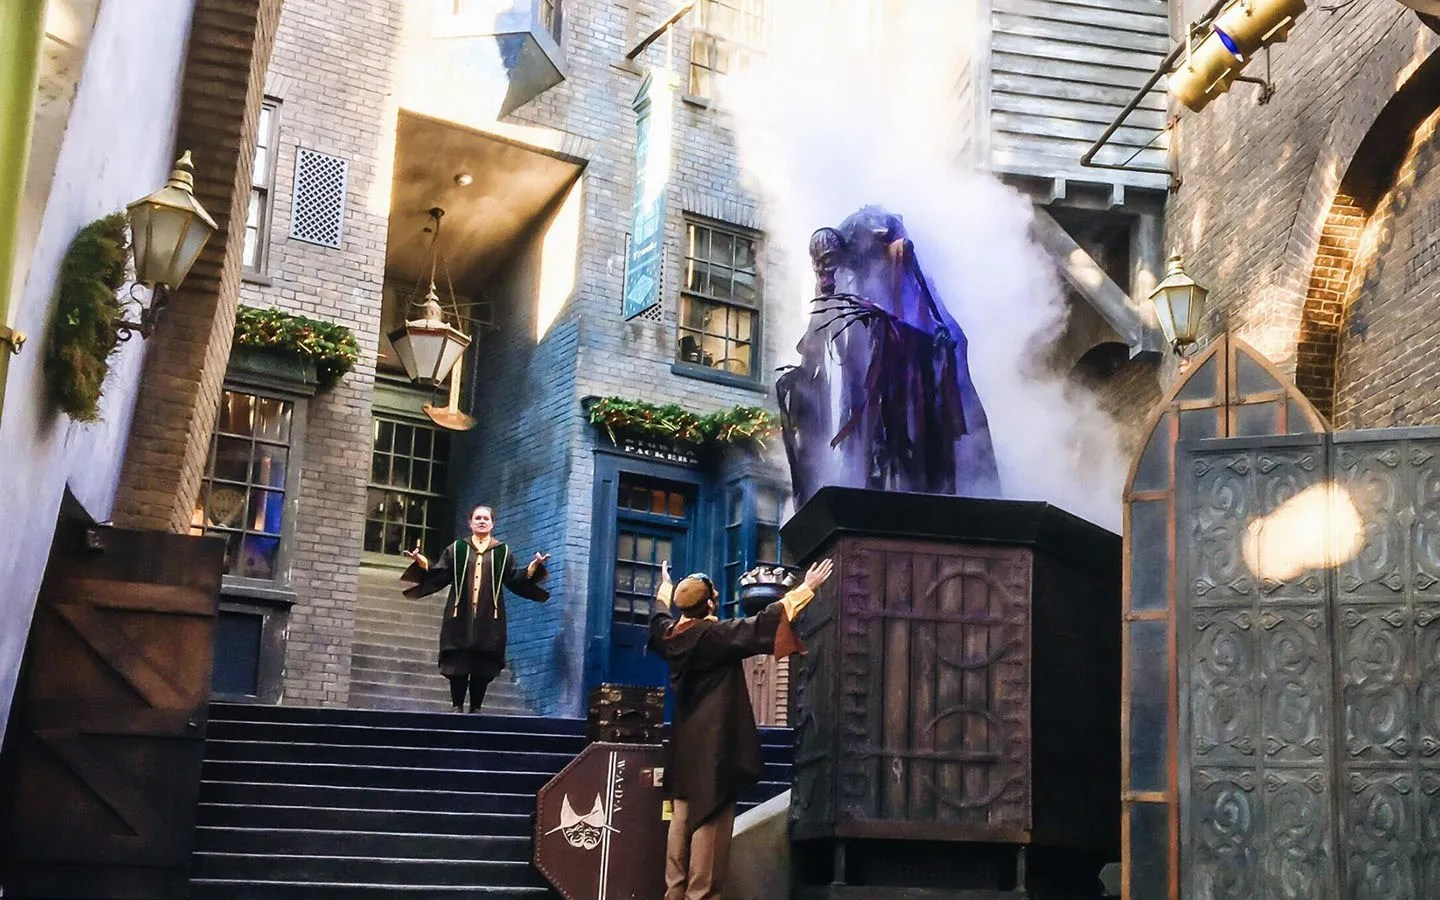 The Tales of Beedle the Bard at The Wizarding World of Harry Potter